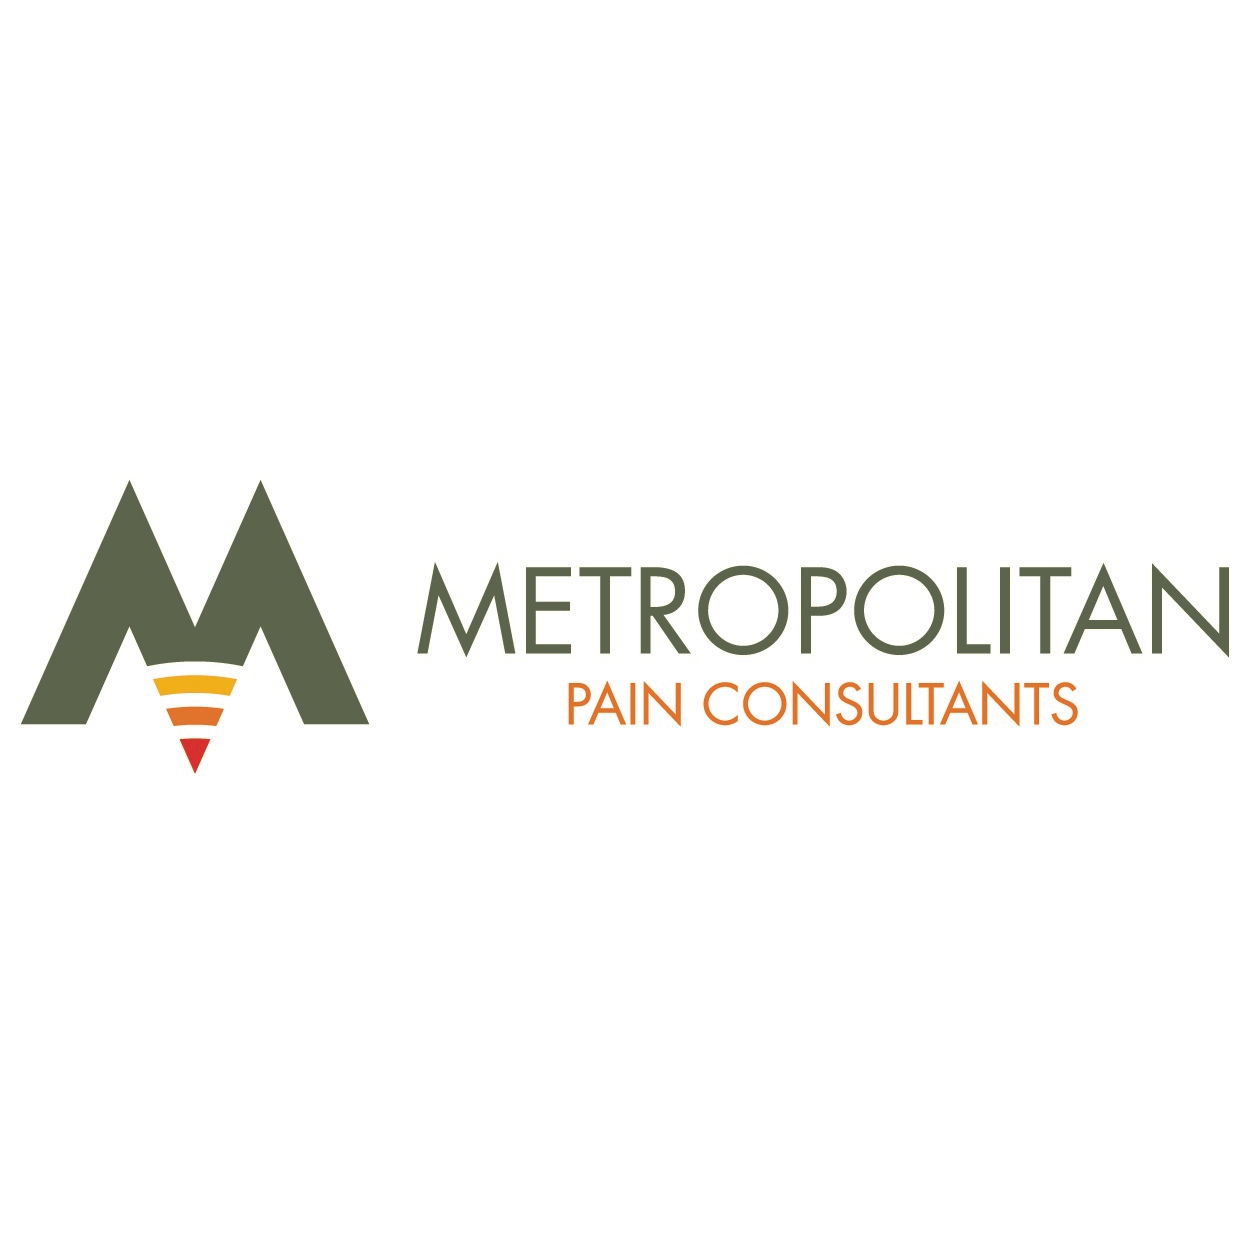 Metropolitan Pain Consultants - Interventional Spine, Sports and Orthopedic Medicine image 0